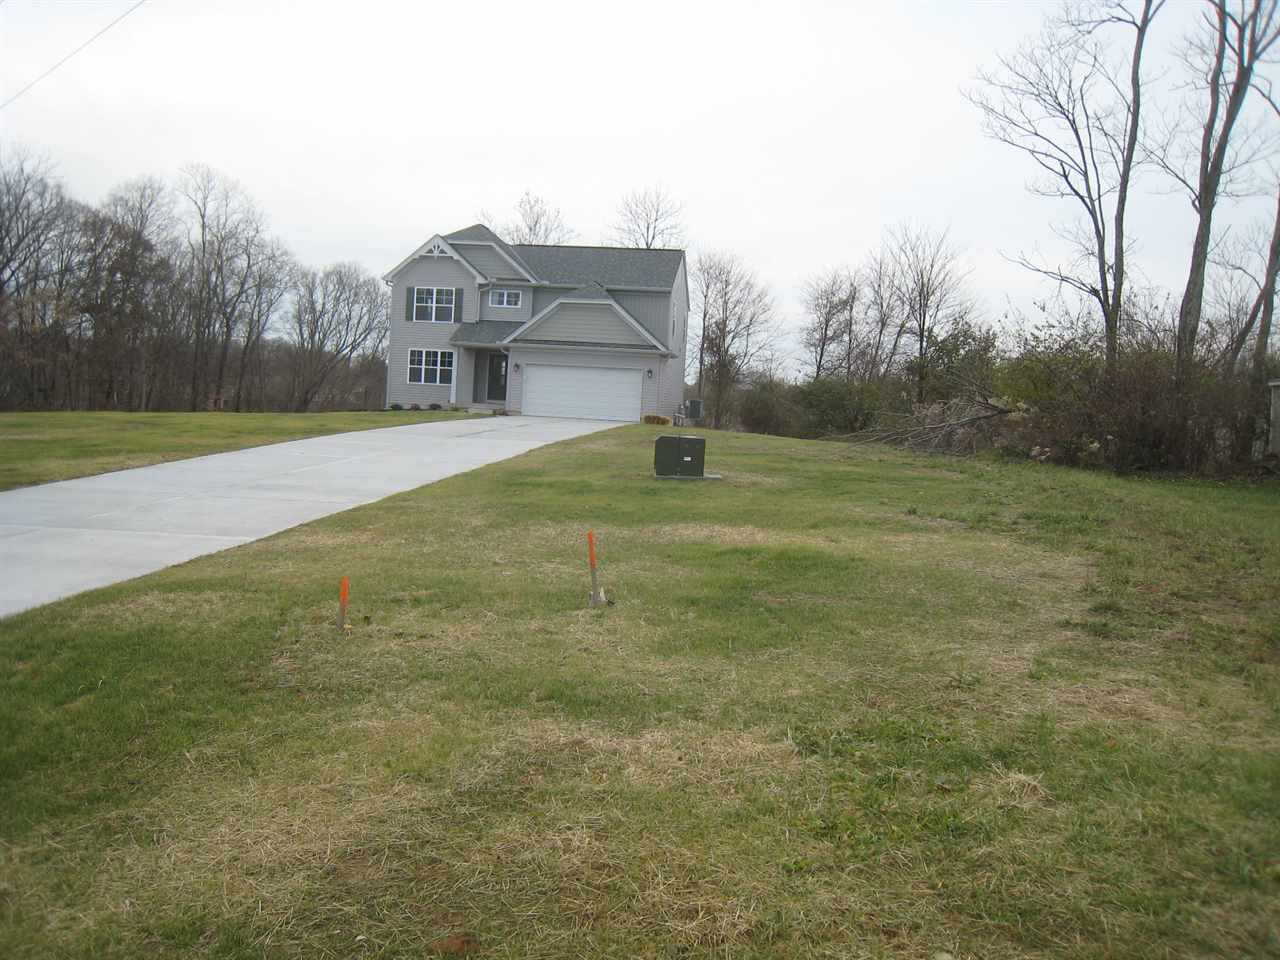 Photo 3 for 1083 Sprucehill Ln Independence, KY 41051